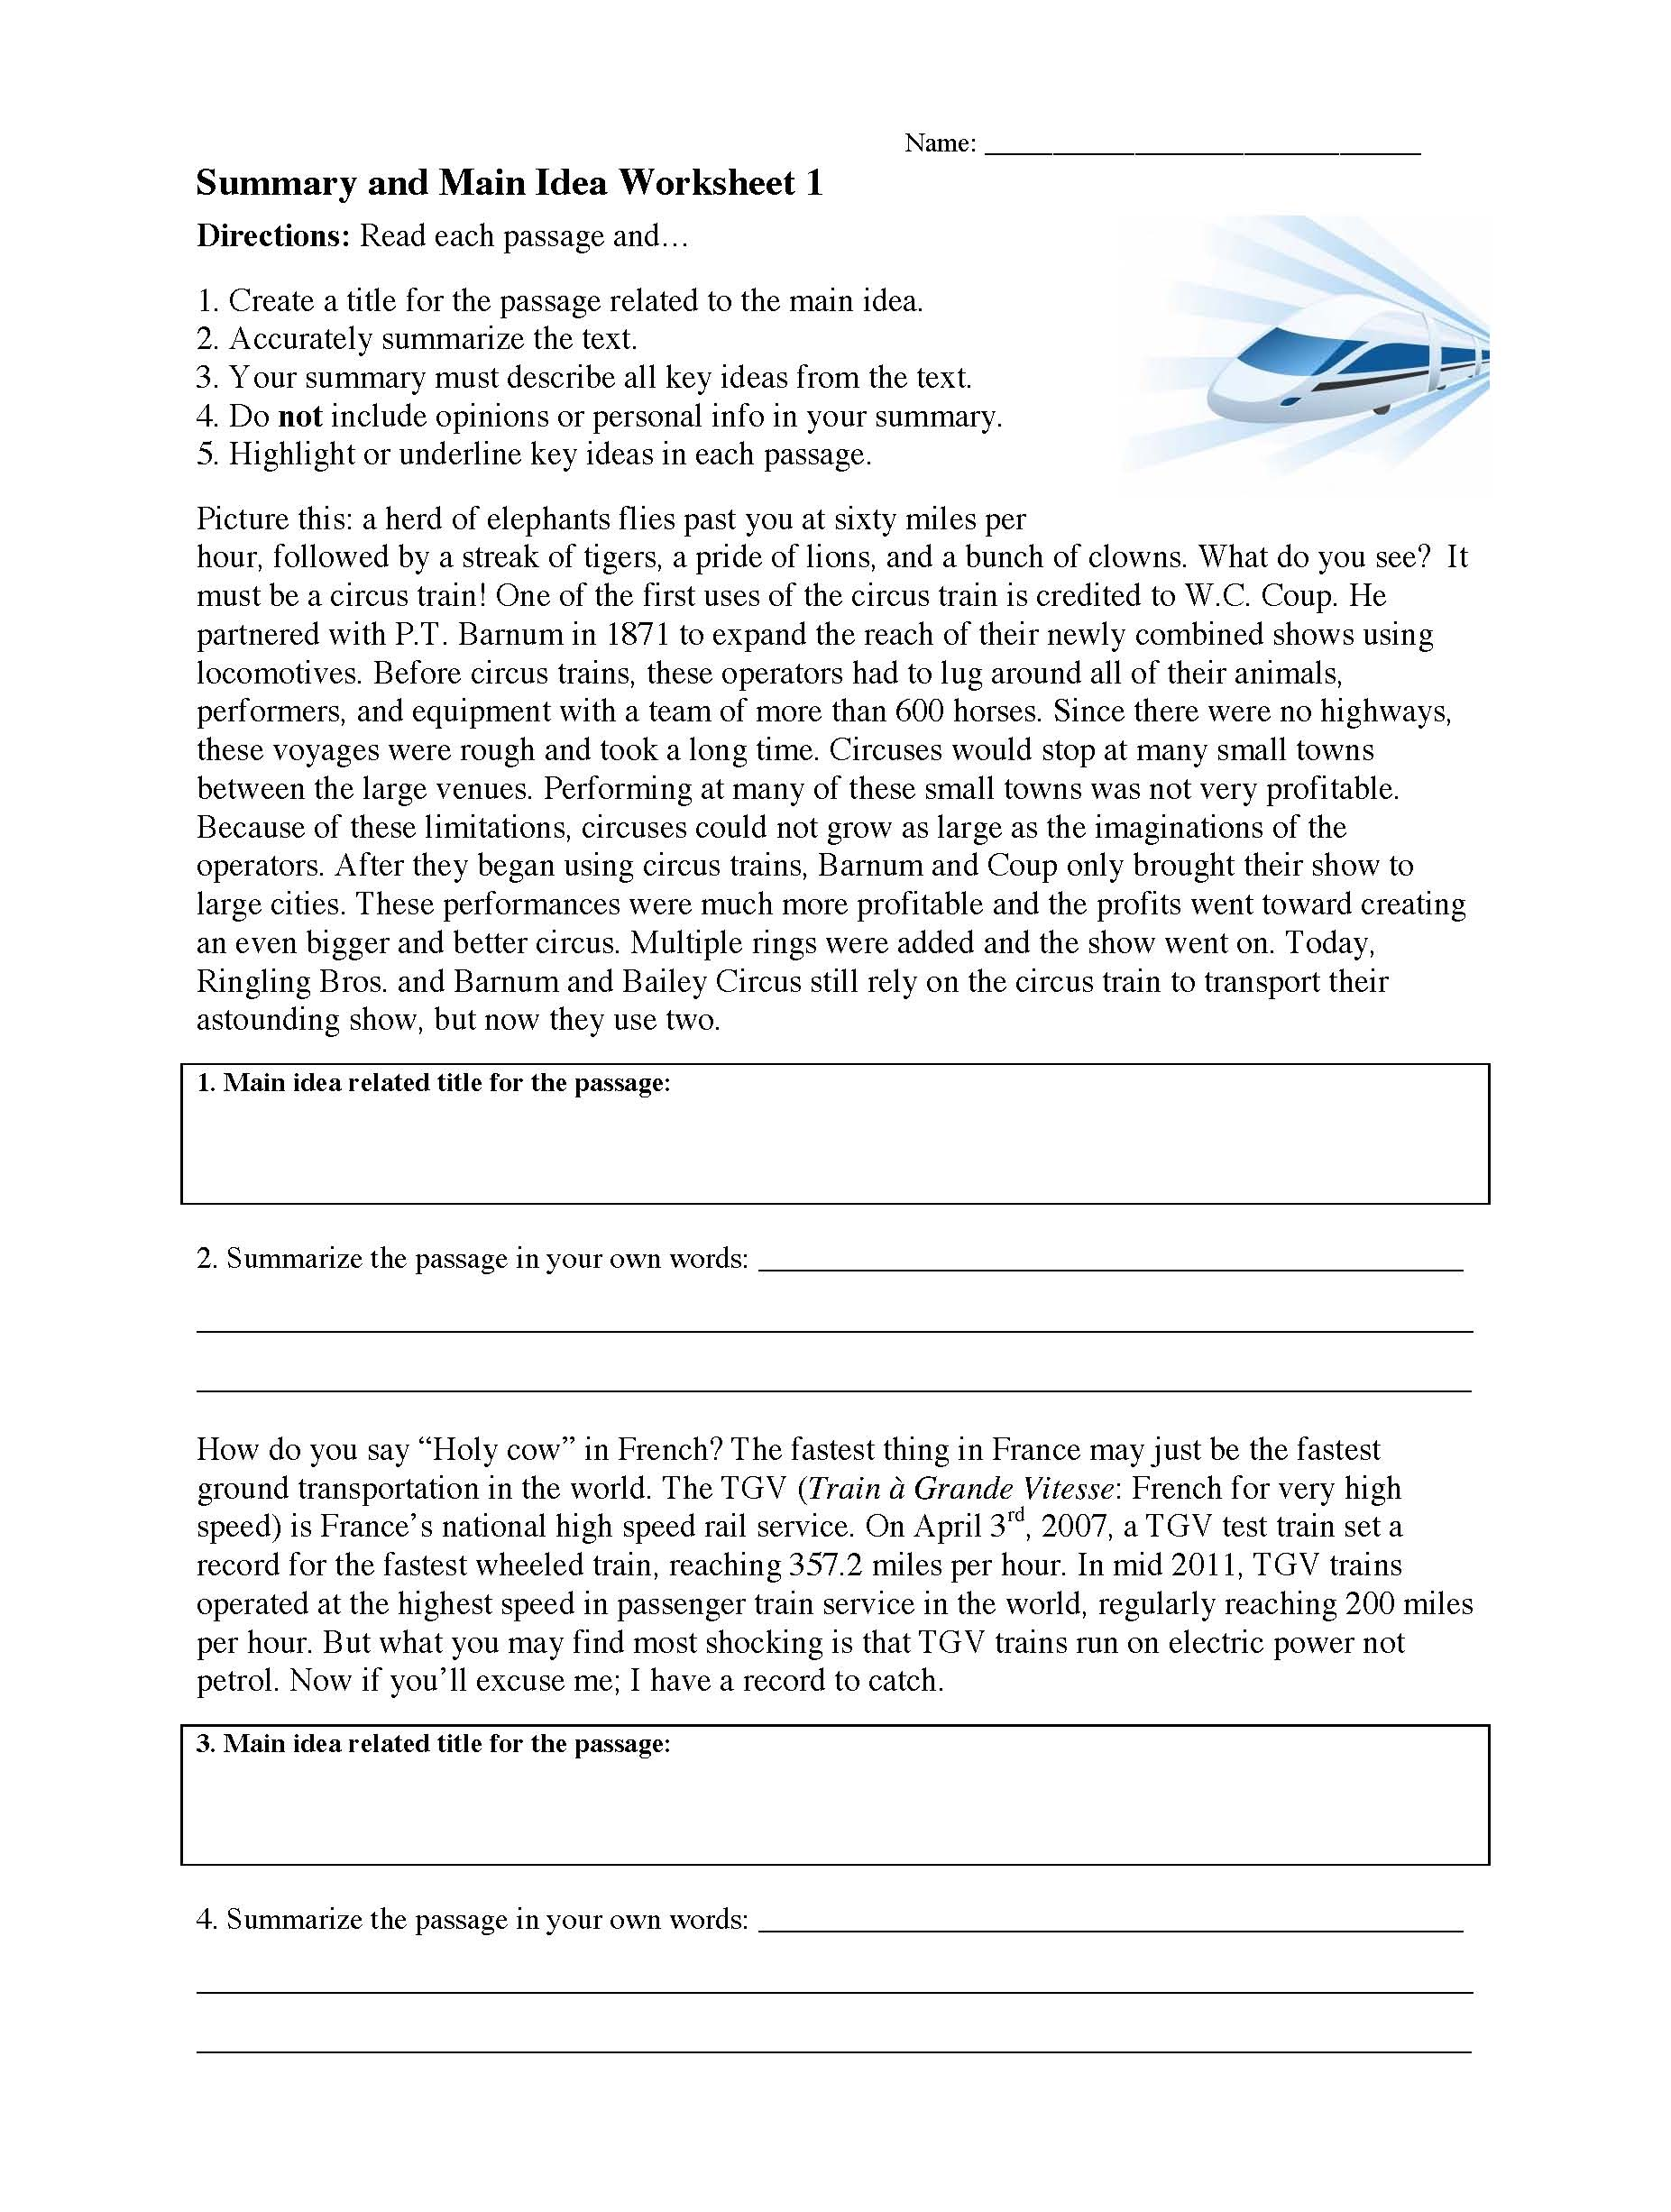 Summary And Main Idea Worksheet 1